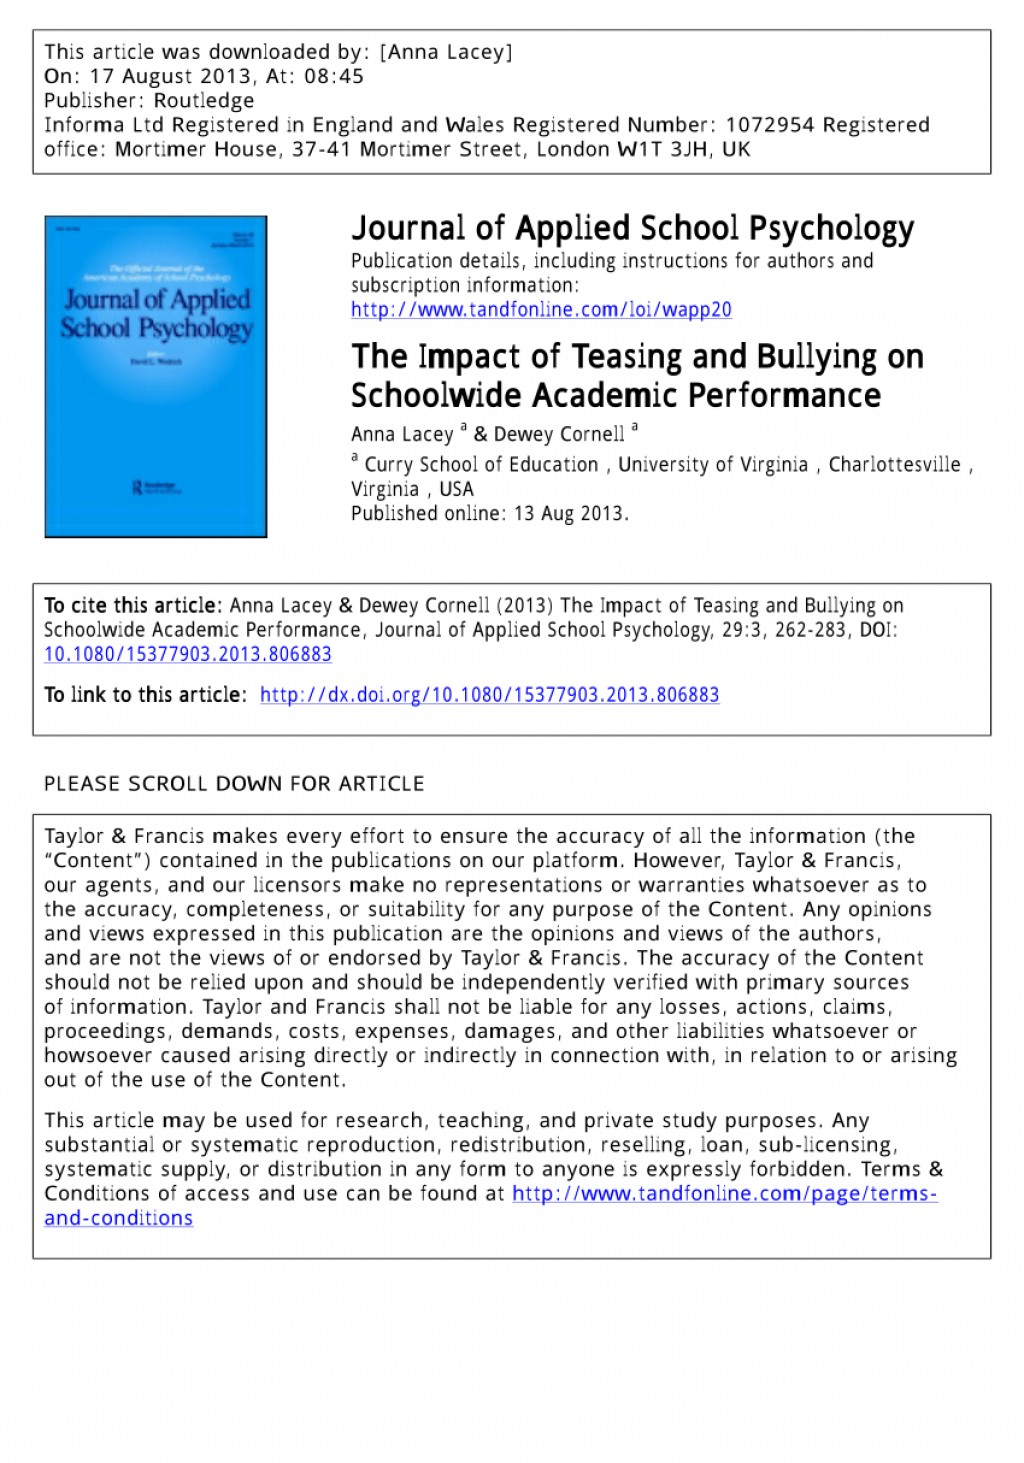 004 Research Paper Psychological Effects Of Bullying Breathtaking Large